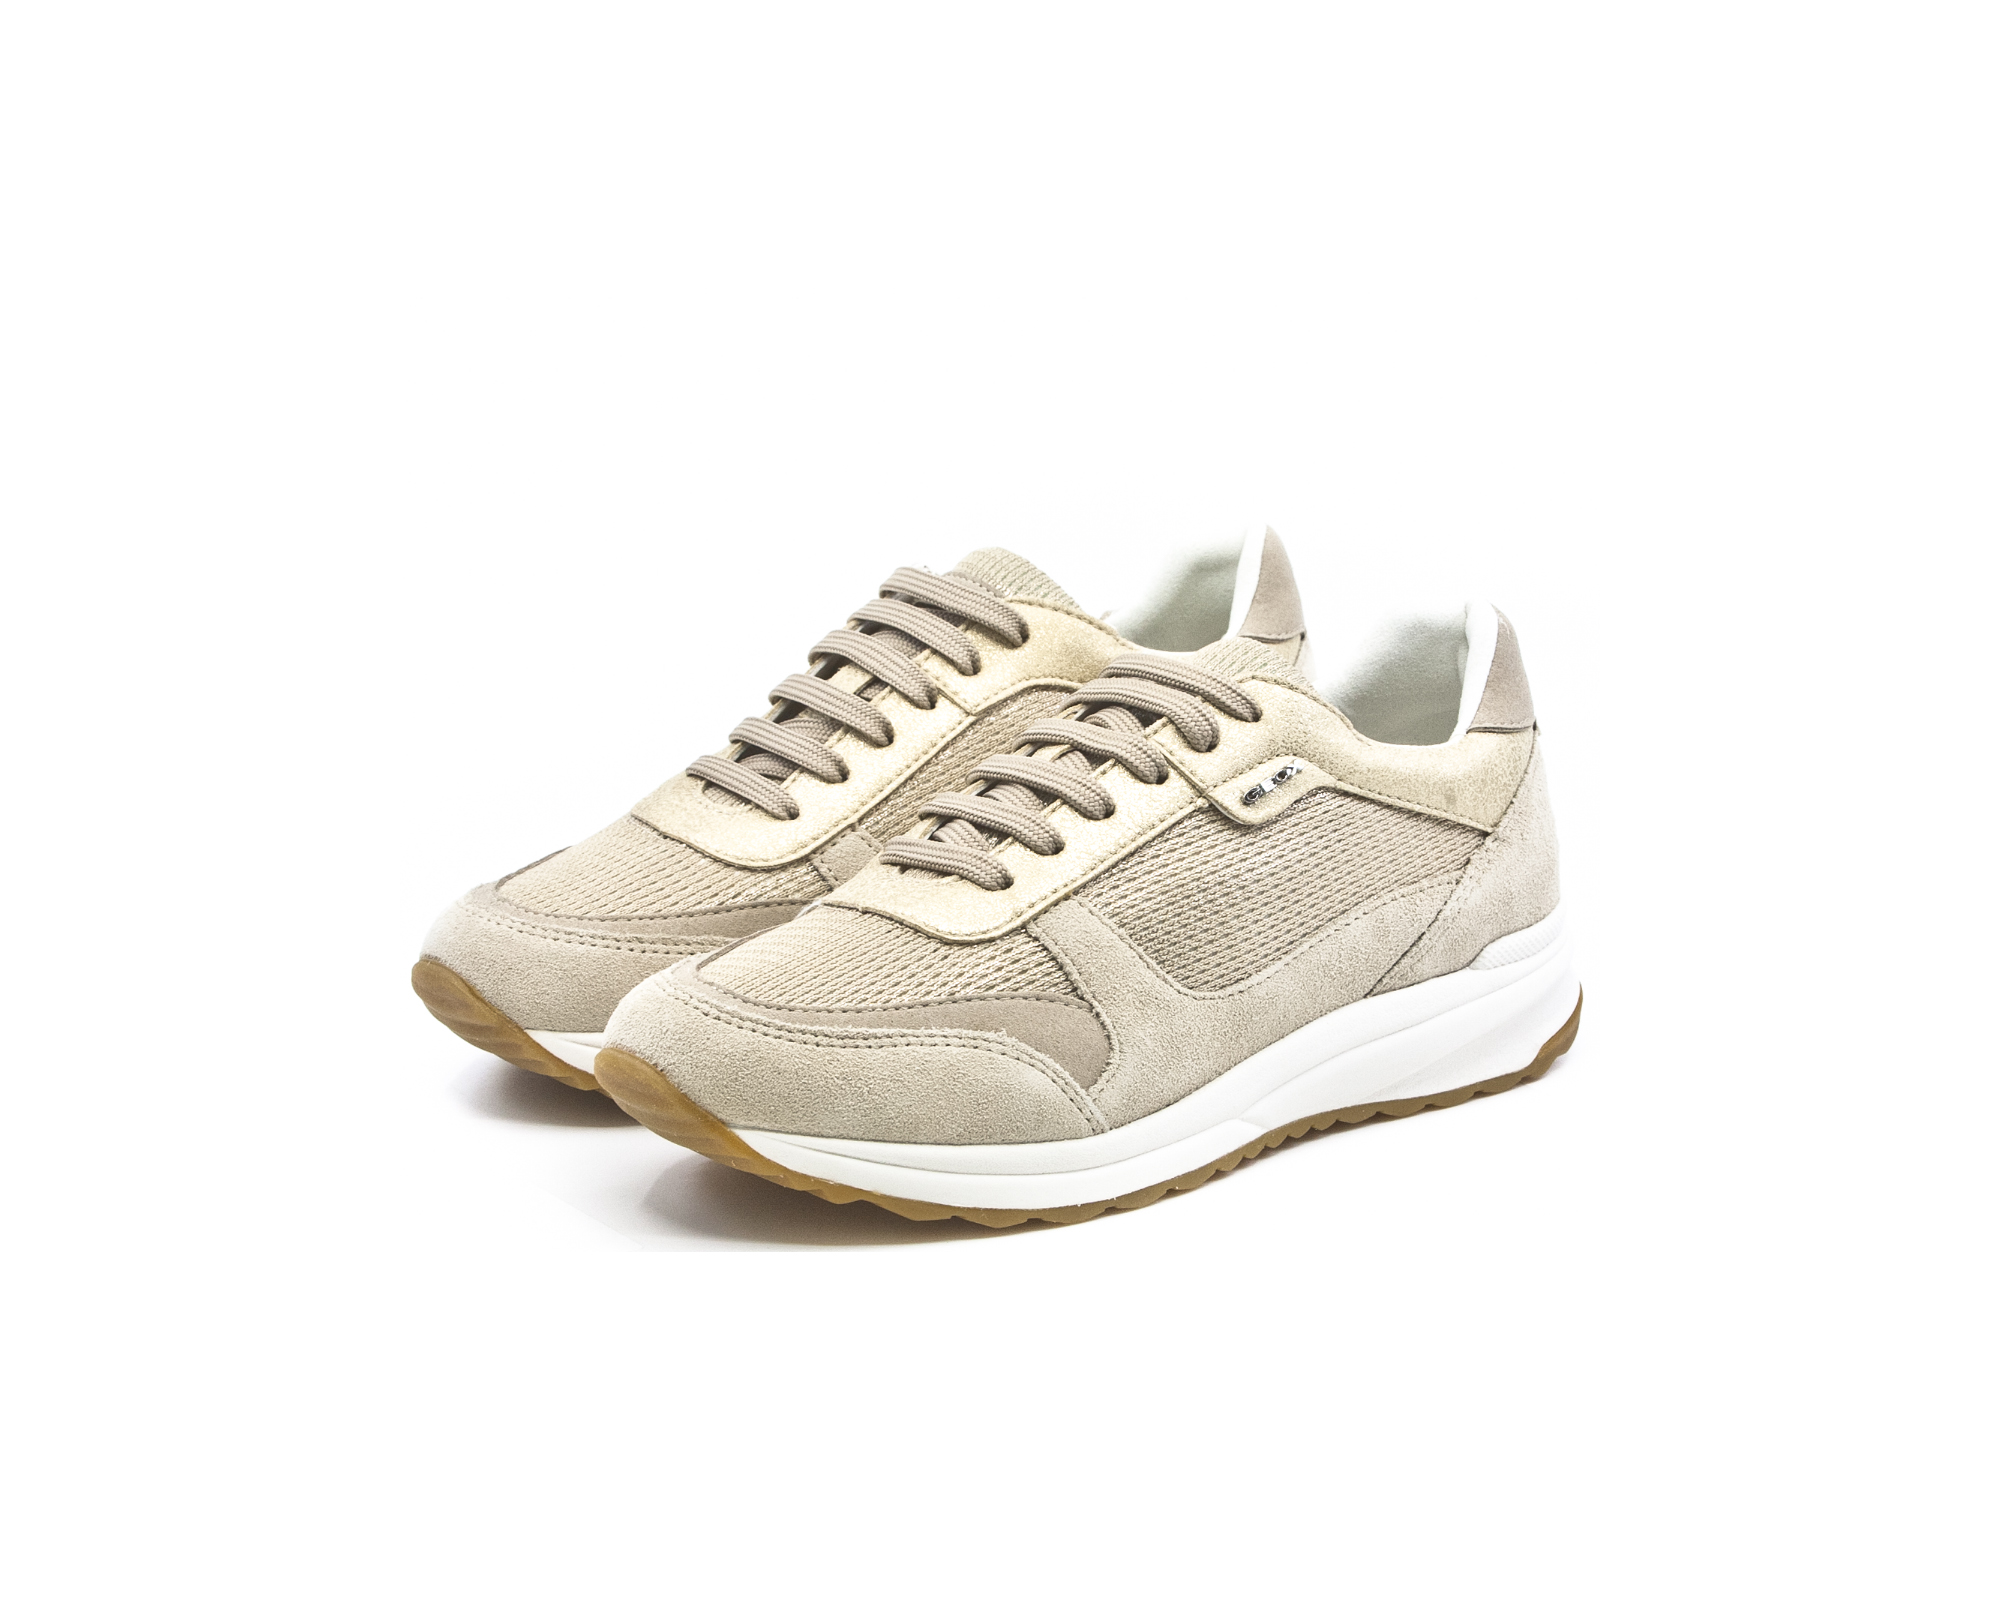 82c45a84fa1 Geox D Airell Γυναικεία Ανατομικά Sneakers Champagne-Beige (D642SC 0LY22  CB55A) - LifeShoes.gr